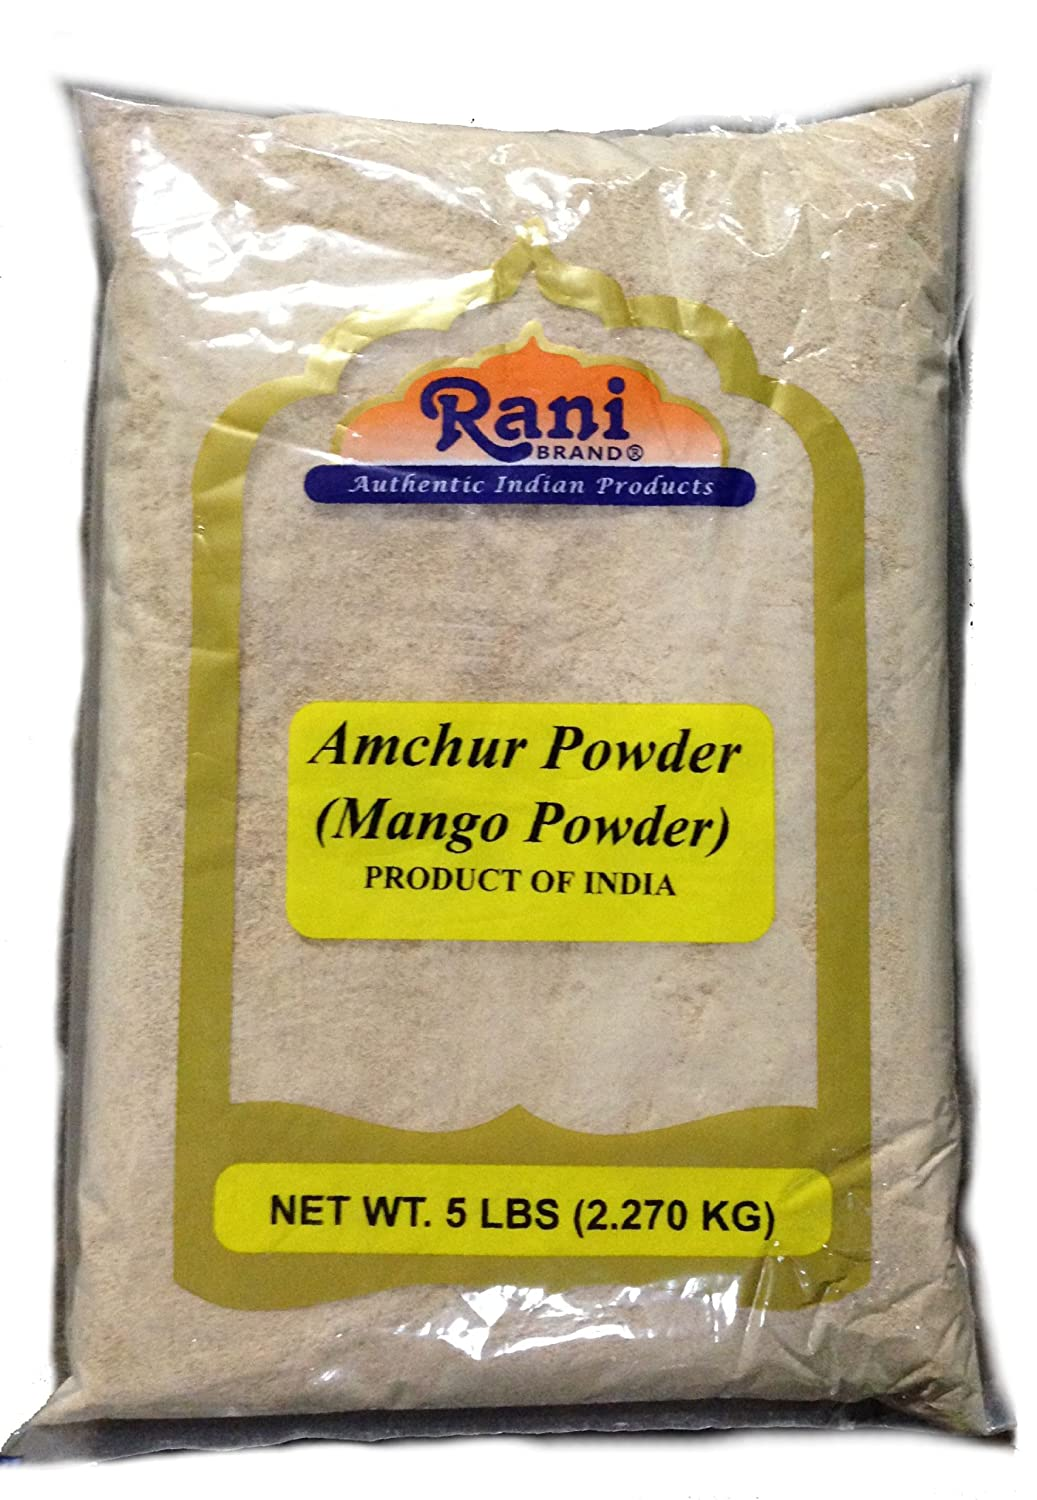 Rani Amchur (Mango) Ground Powder 80oz (5lbs) Bulk Poly ~ All Natural, Indian Origin | No Color | Gluten Free Ingredients | Vegan | NON-GMO | No Salt or fillers